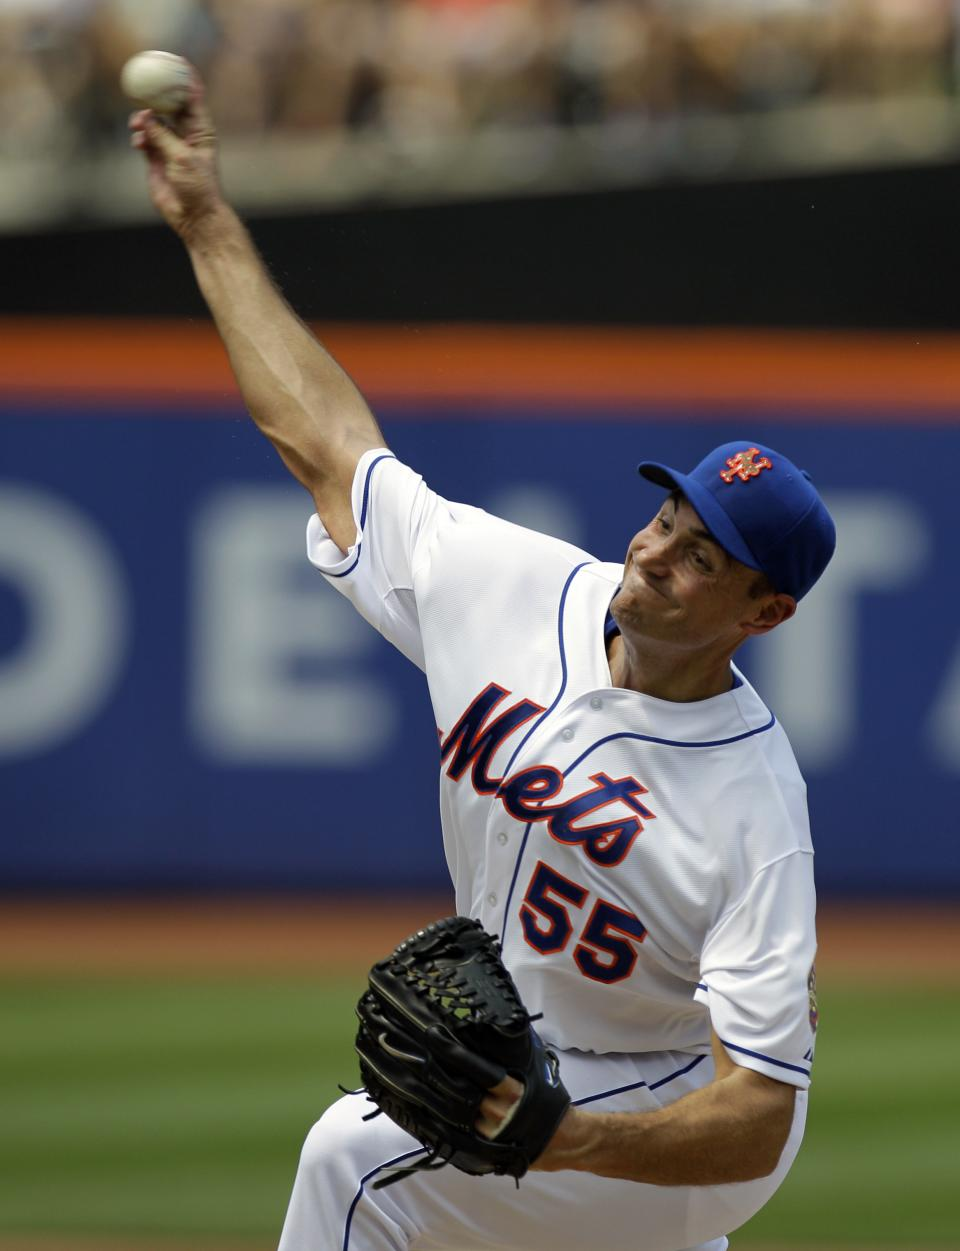 New York Mets starting pitcher Chris Young delivers against the Philadelphia Phillies during the second inning their baseball game at Citi Field in New York, Wednesday, July 4, 2012. (AP Photo/Kathy Willens)